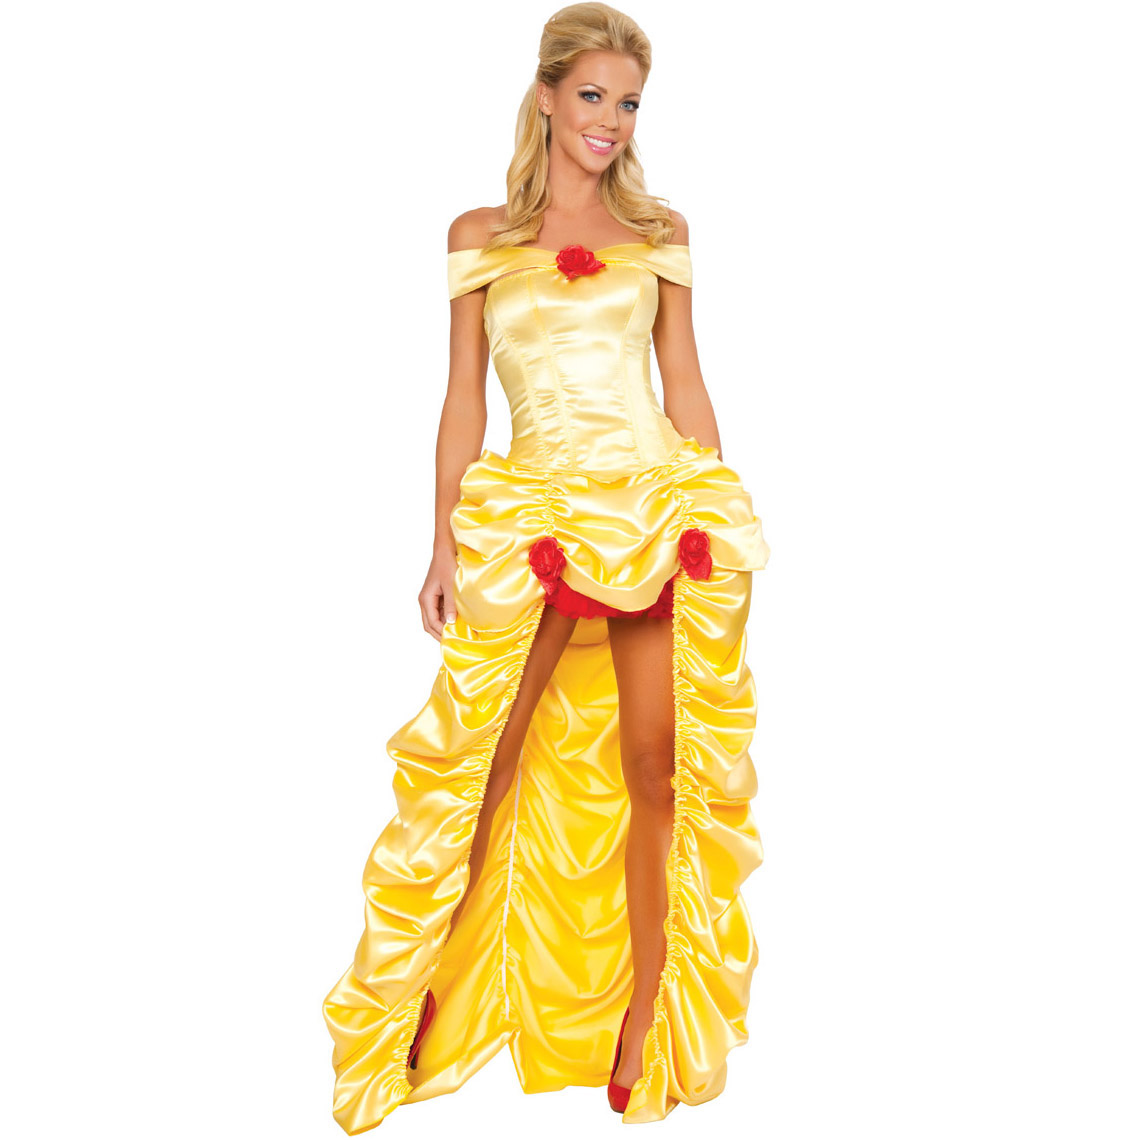 Fairy tale adult costumes adult picture